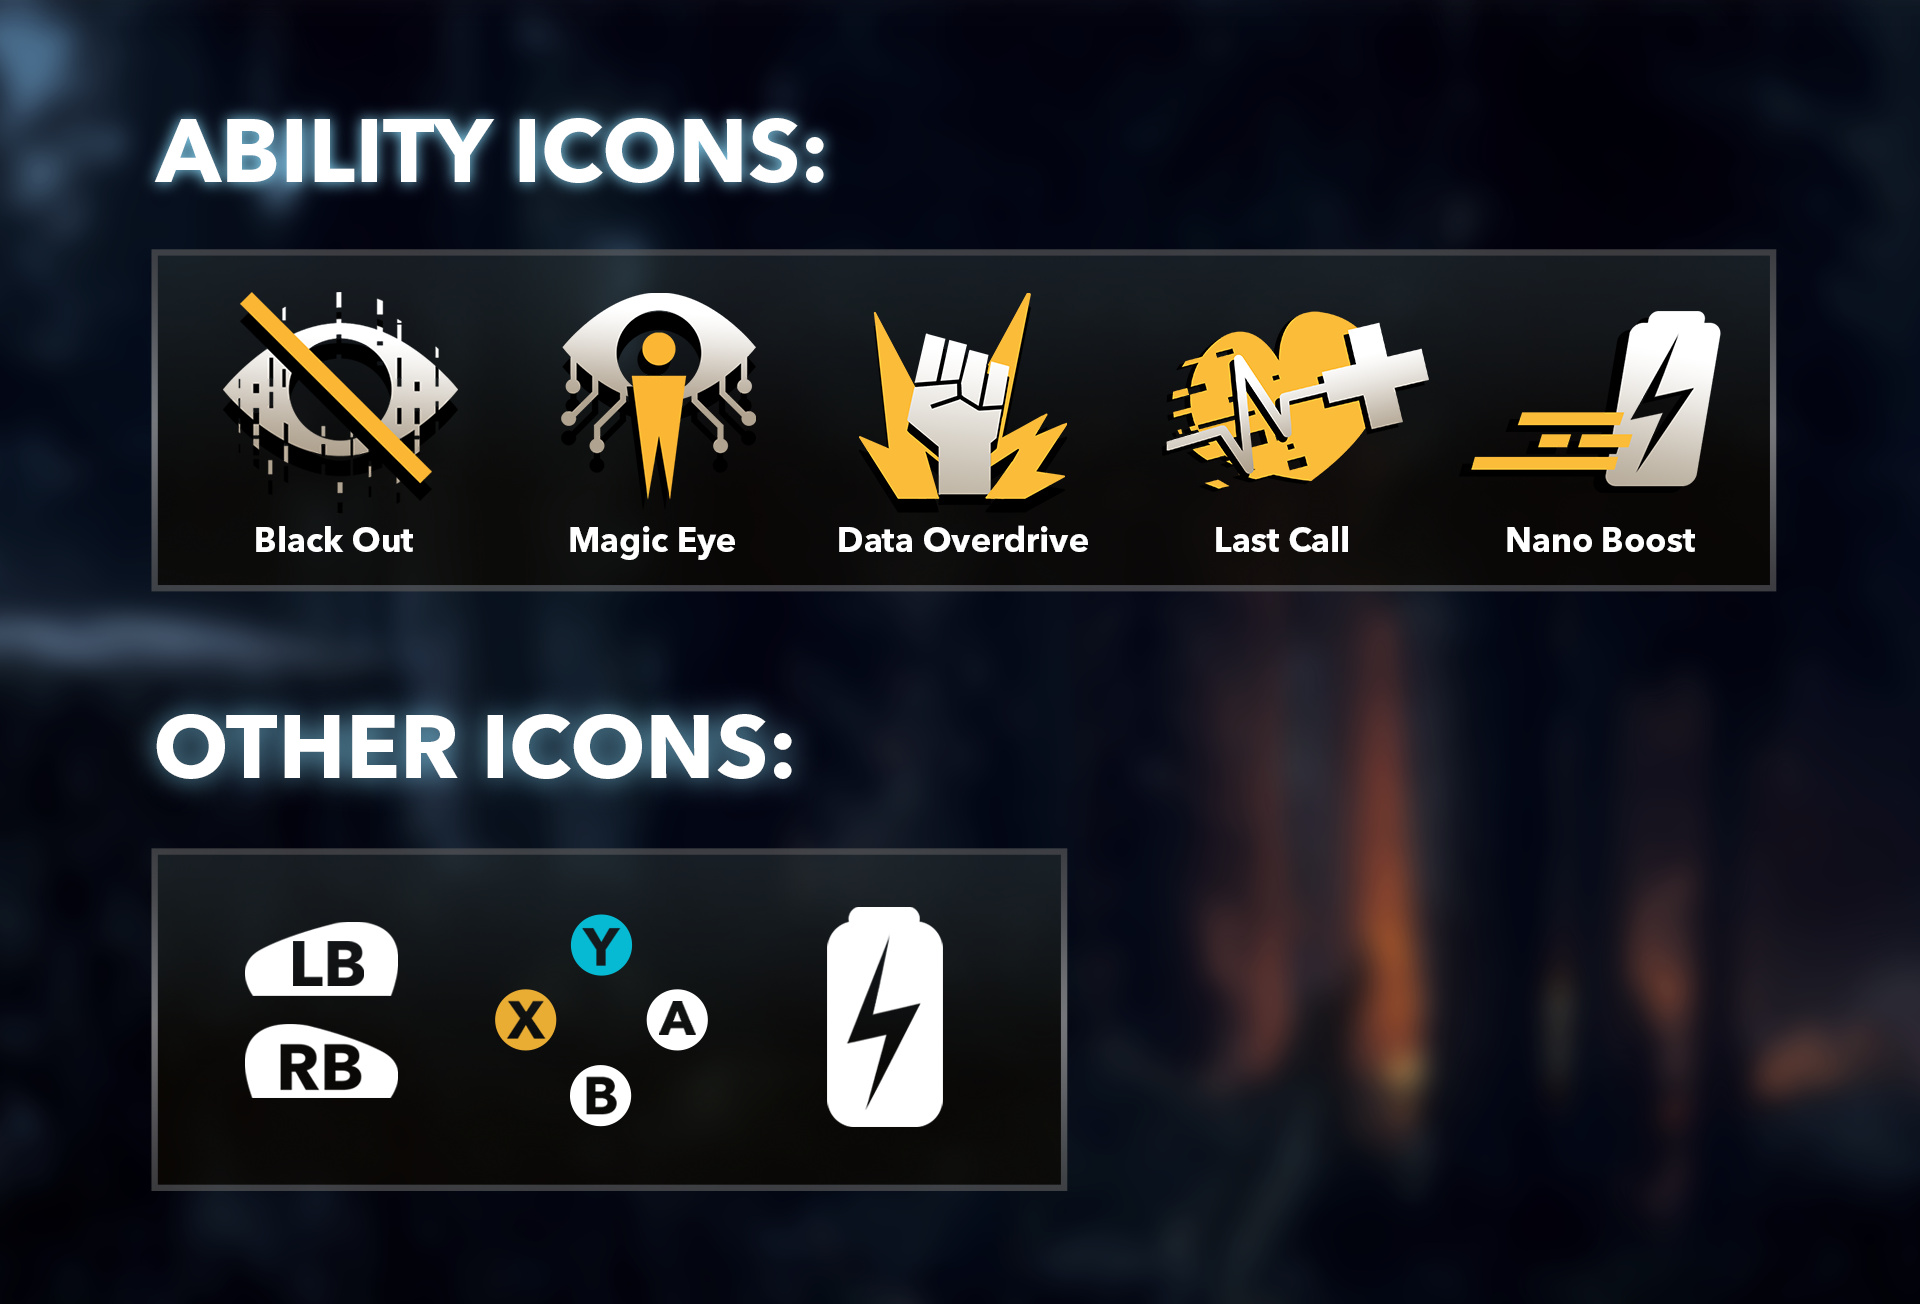 Details of icons from the Ubisoft NEXT 2019 UI art challenge.